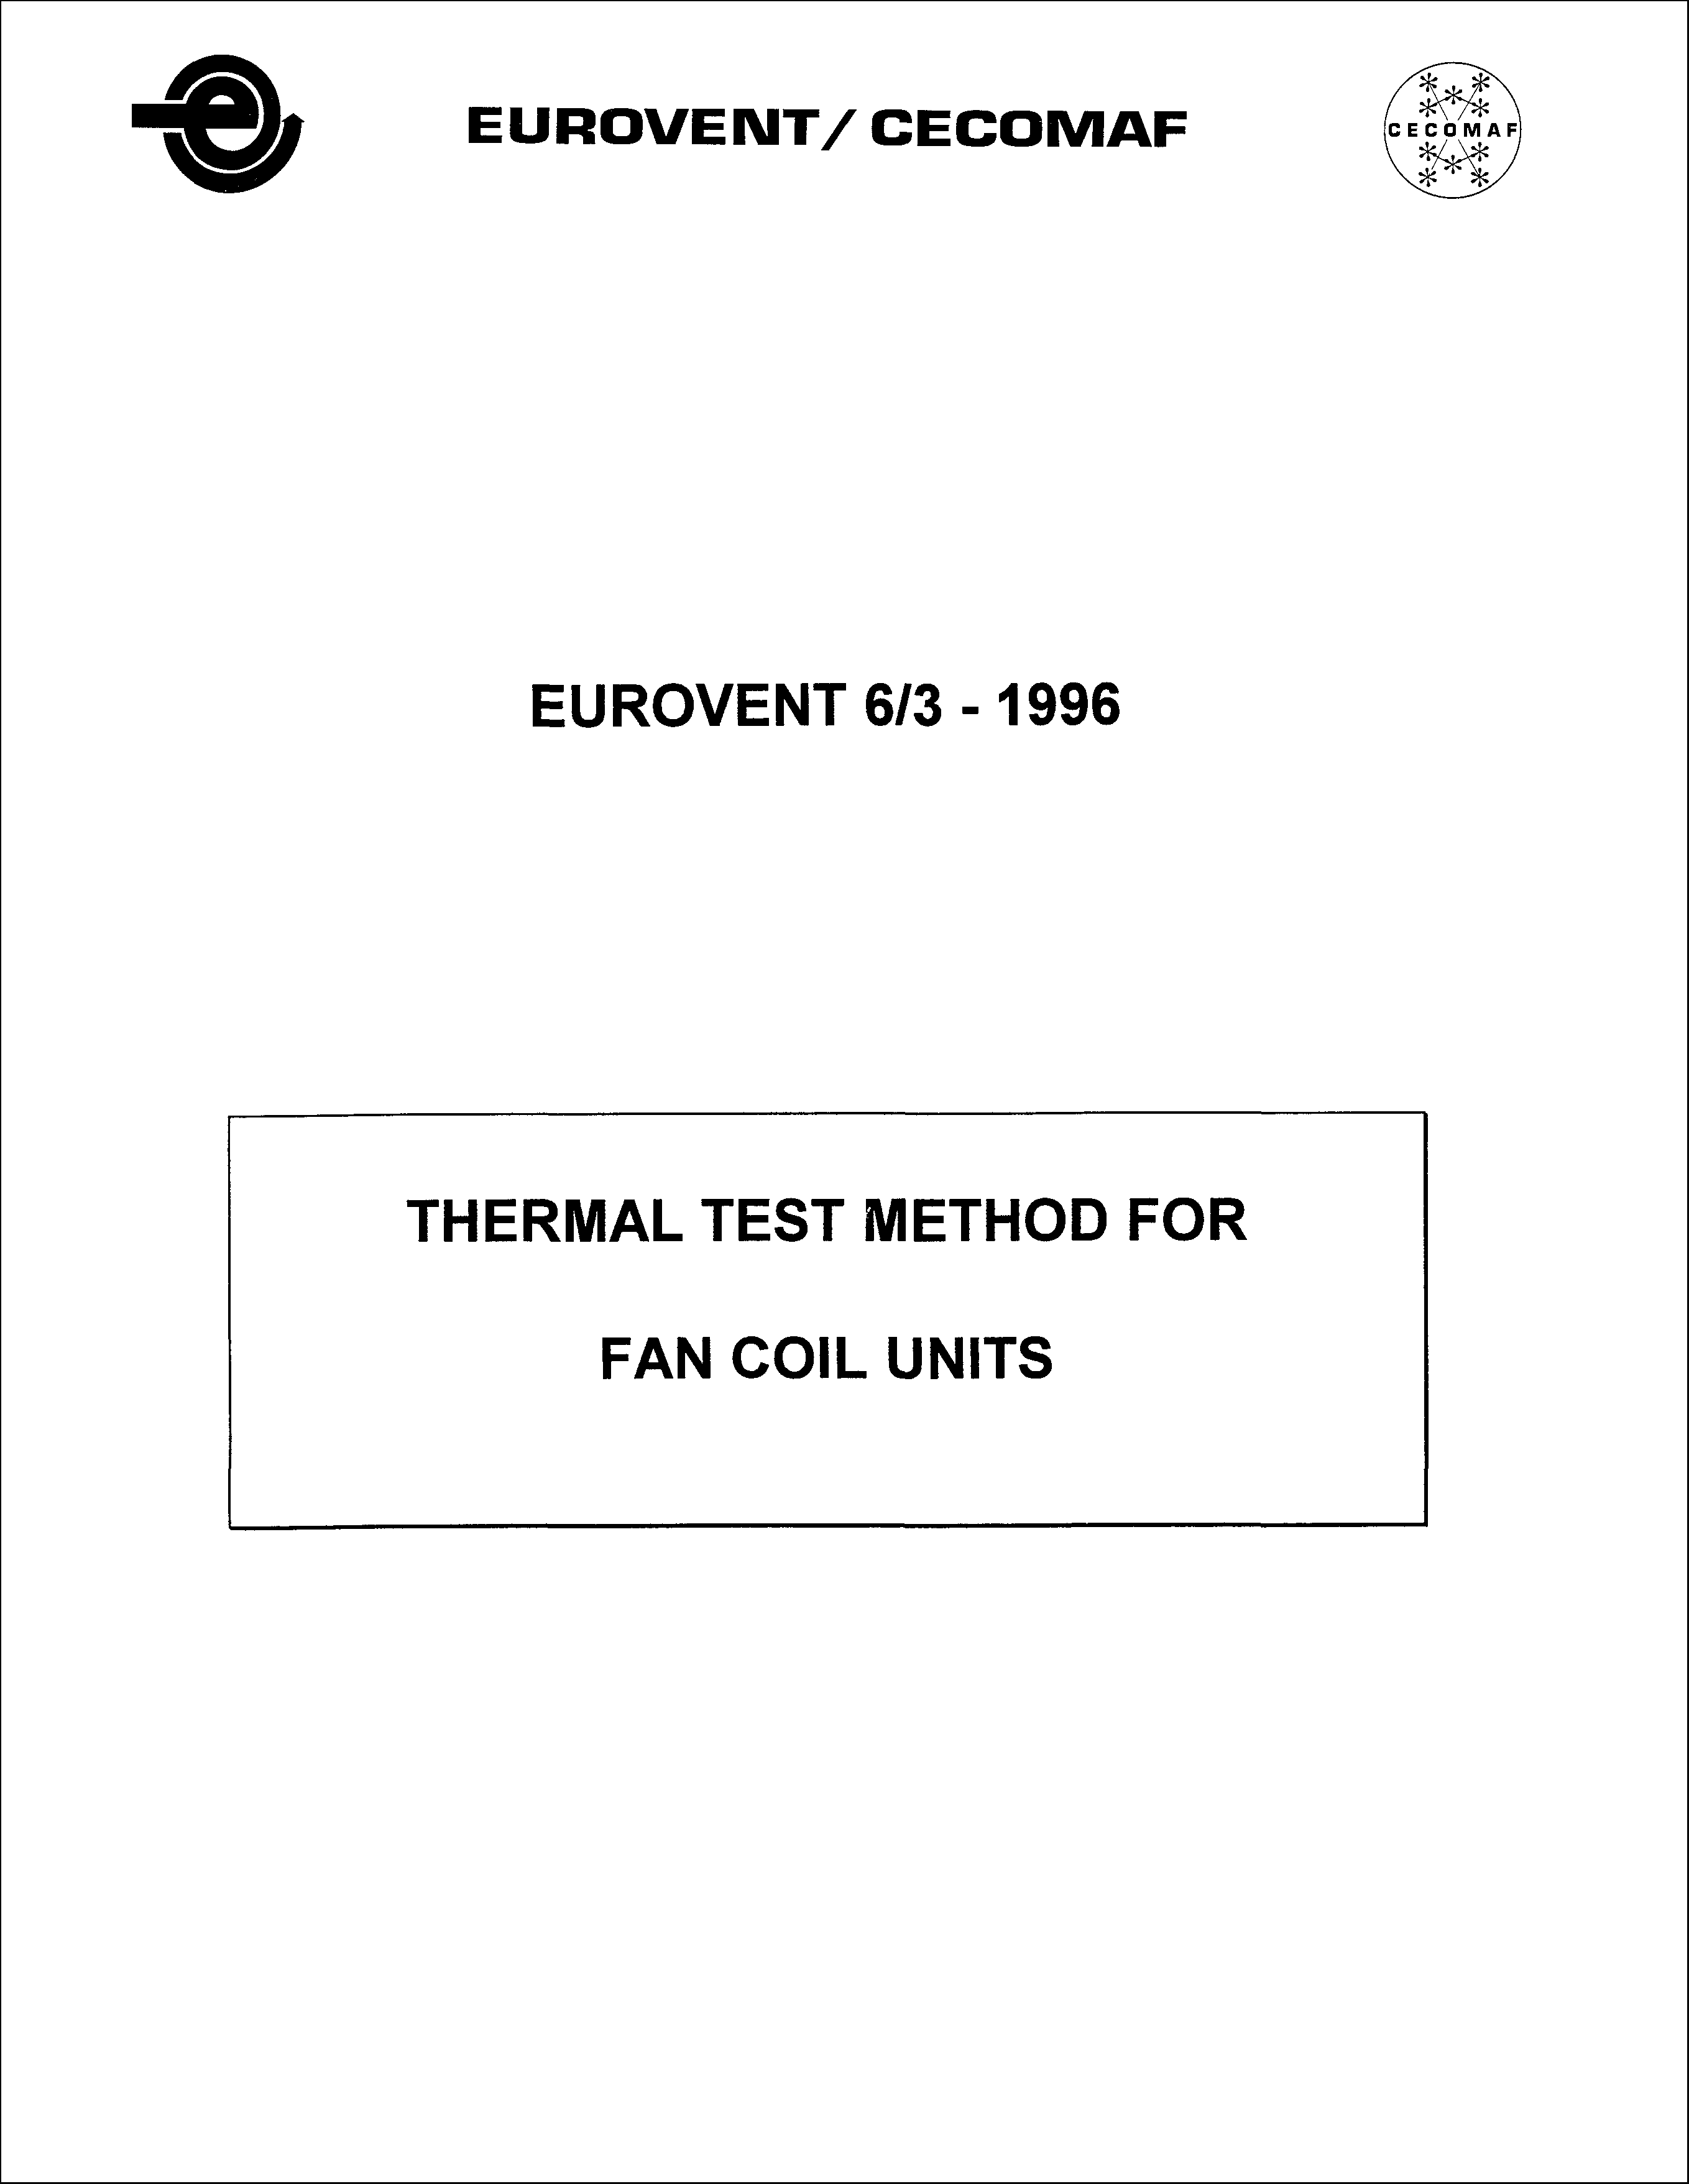 1996 - Thermal test method for fan coil units